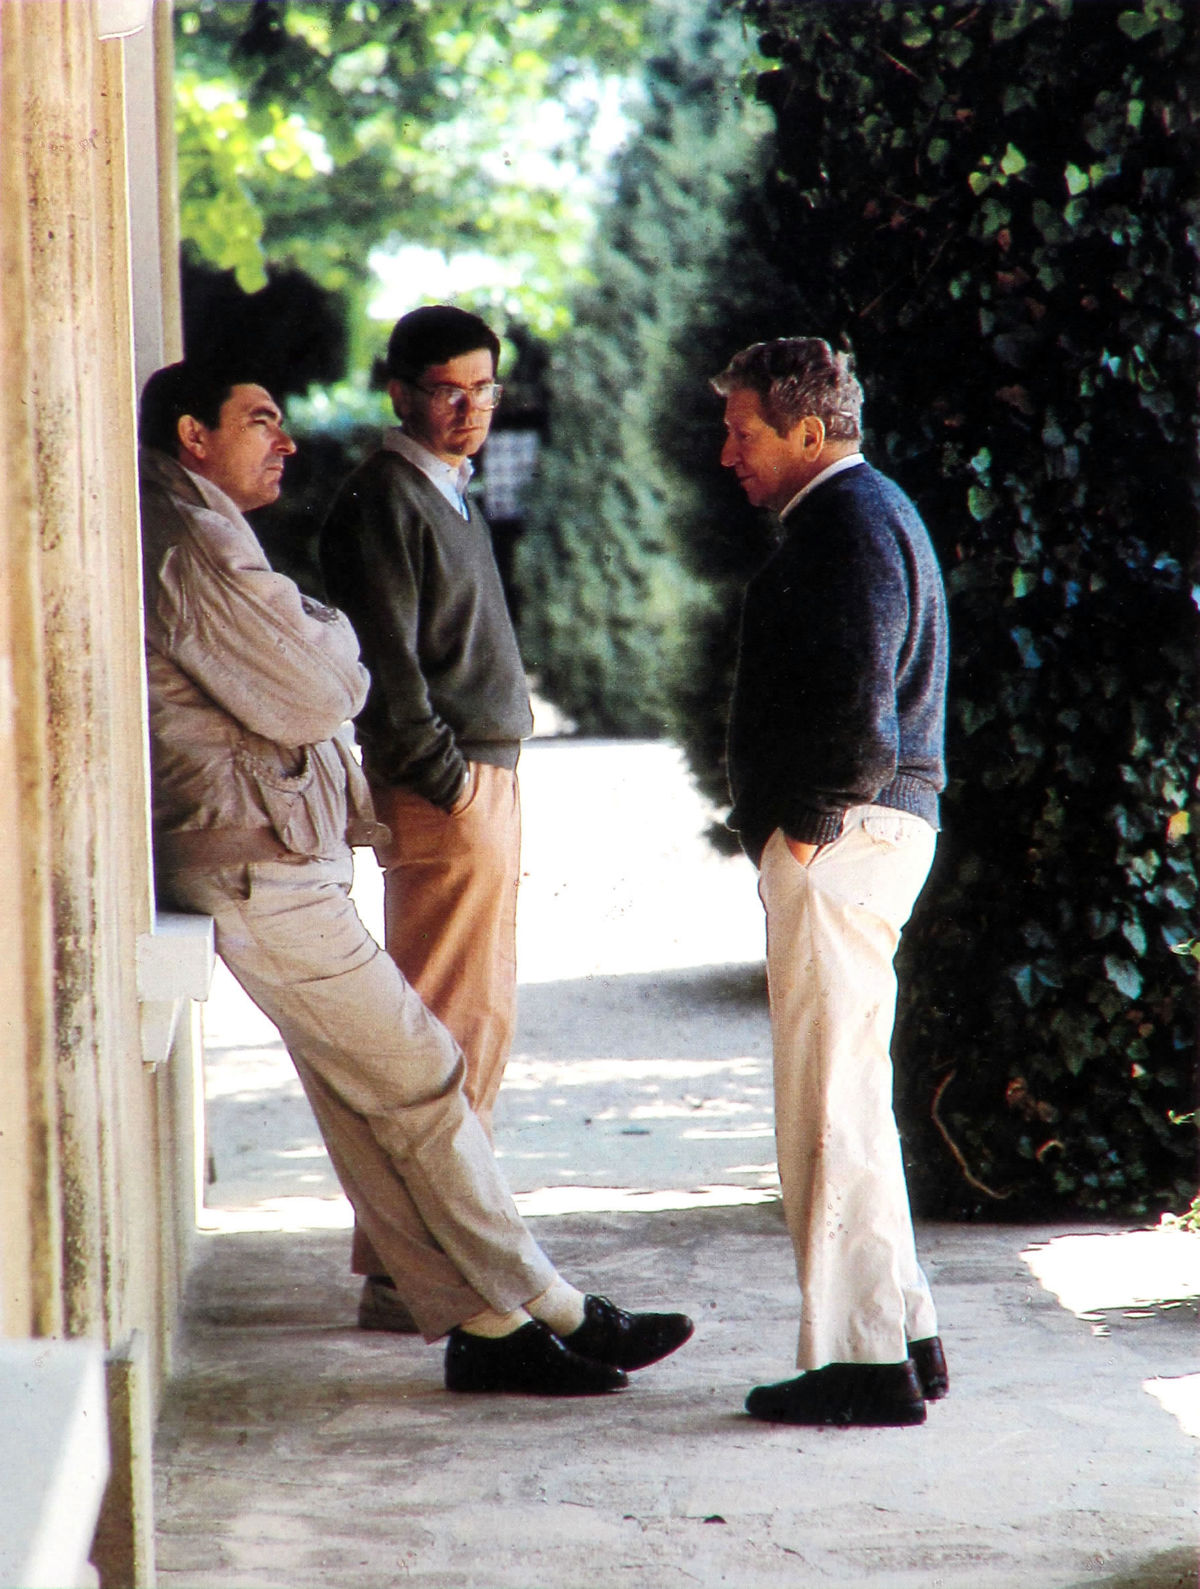 Robert-Haas-with-Jean-Pierre-and-Francois-Perrin